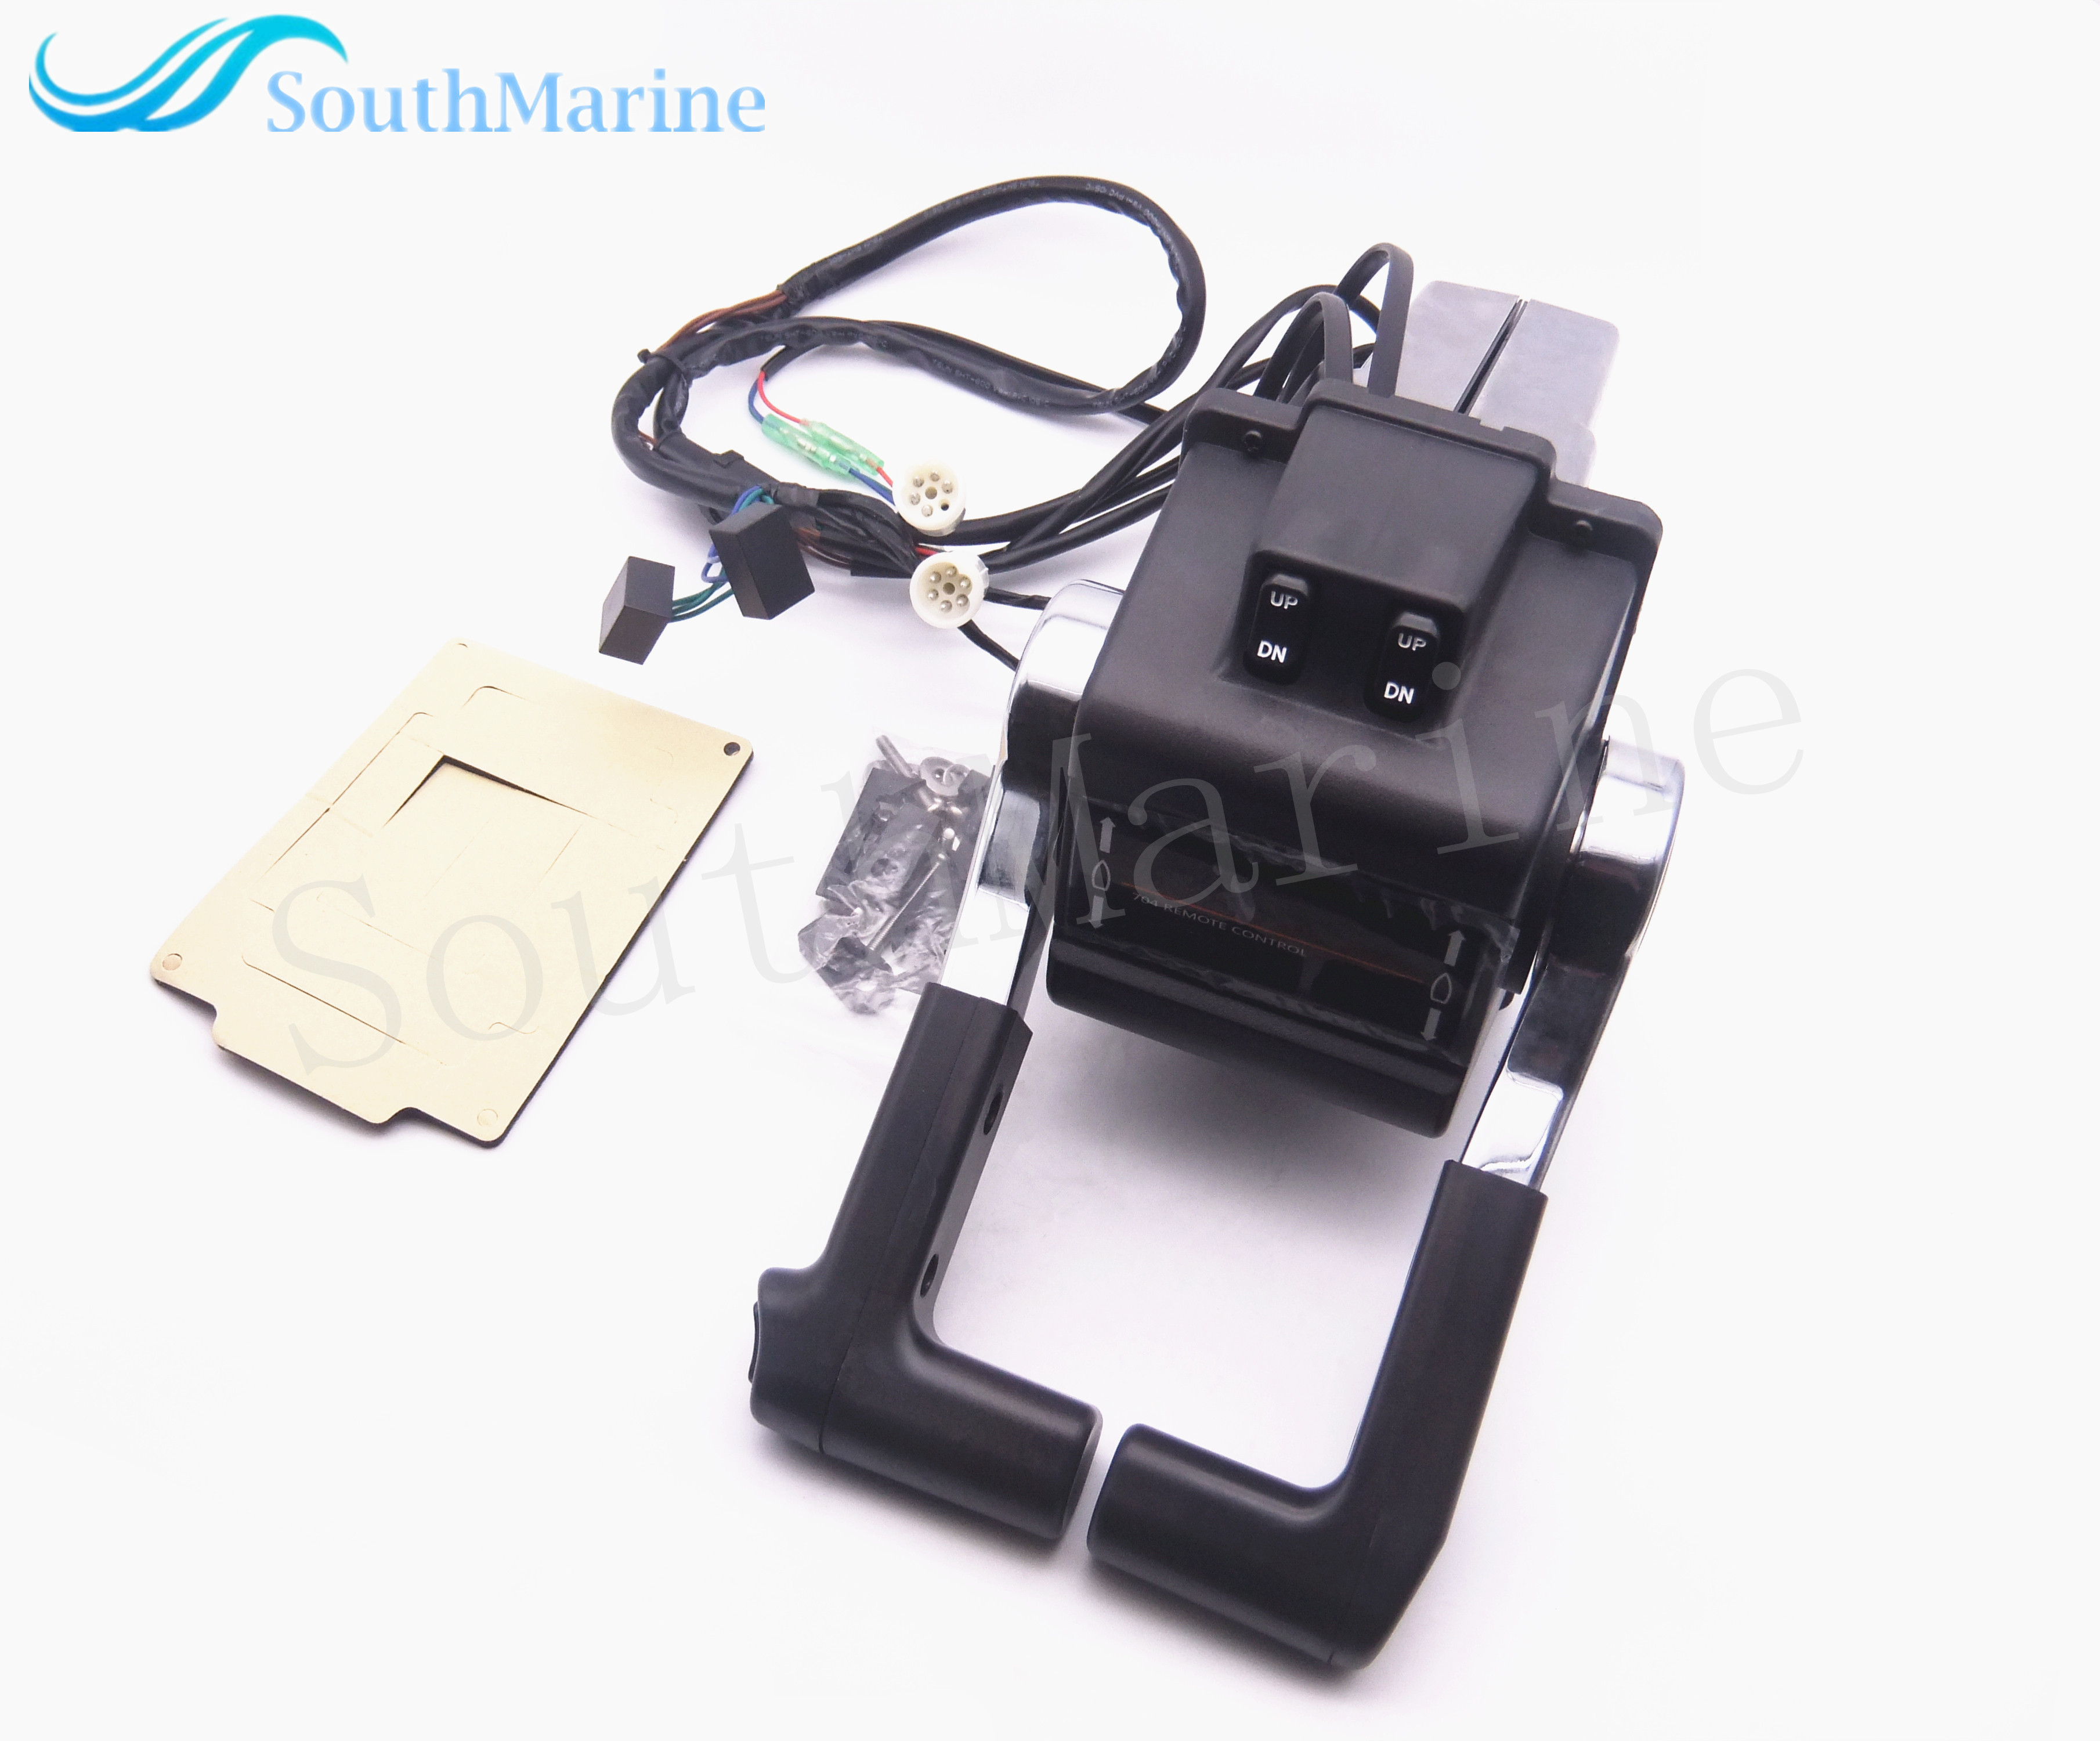 Dual Twin Remote Control Box 704-48207-23-00 704-48207 704 for Yamaha Outboard Motors W PT/T SW, Push